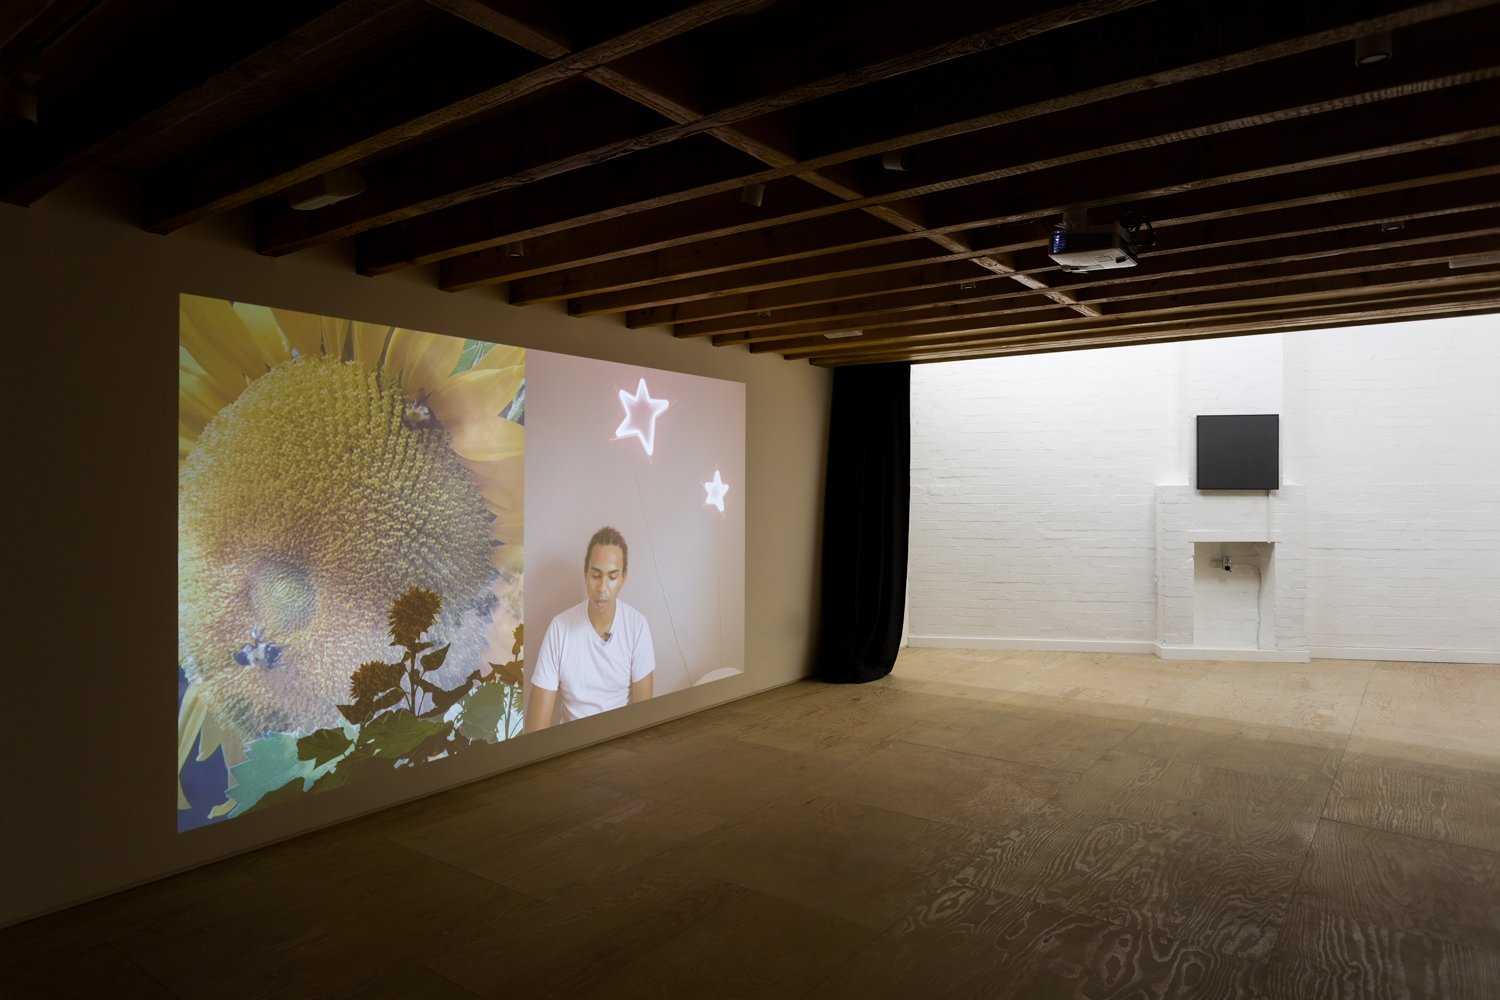 Installation views of Syncopes at Mimosa House